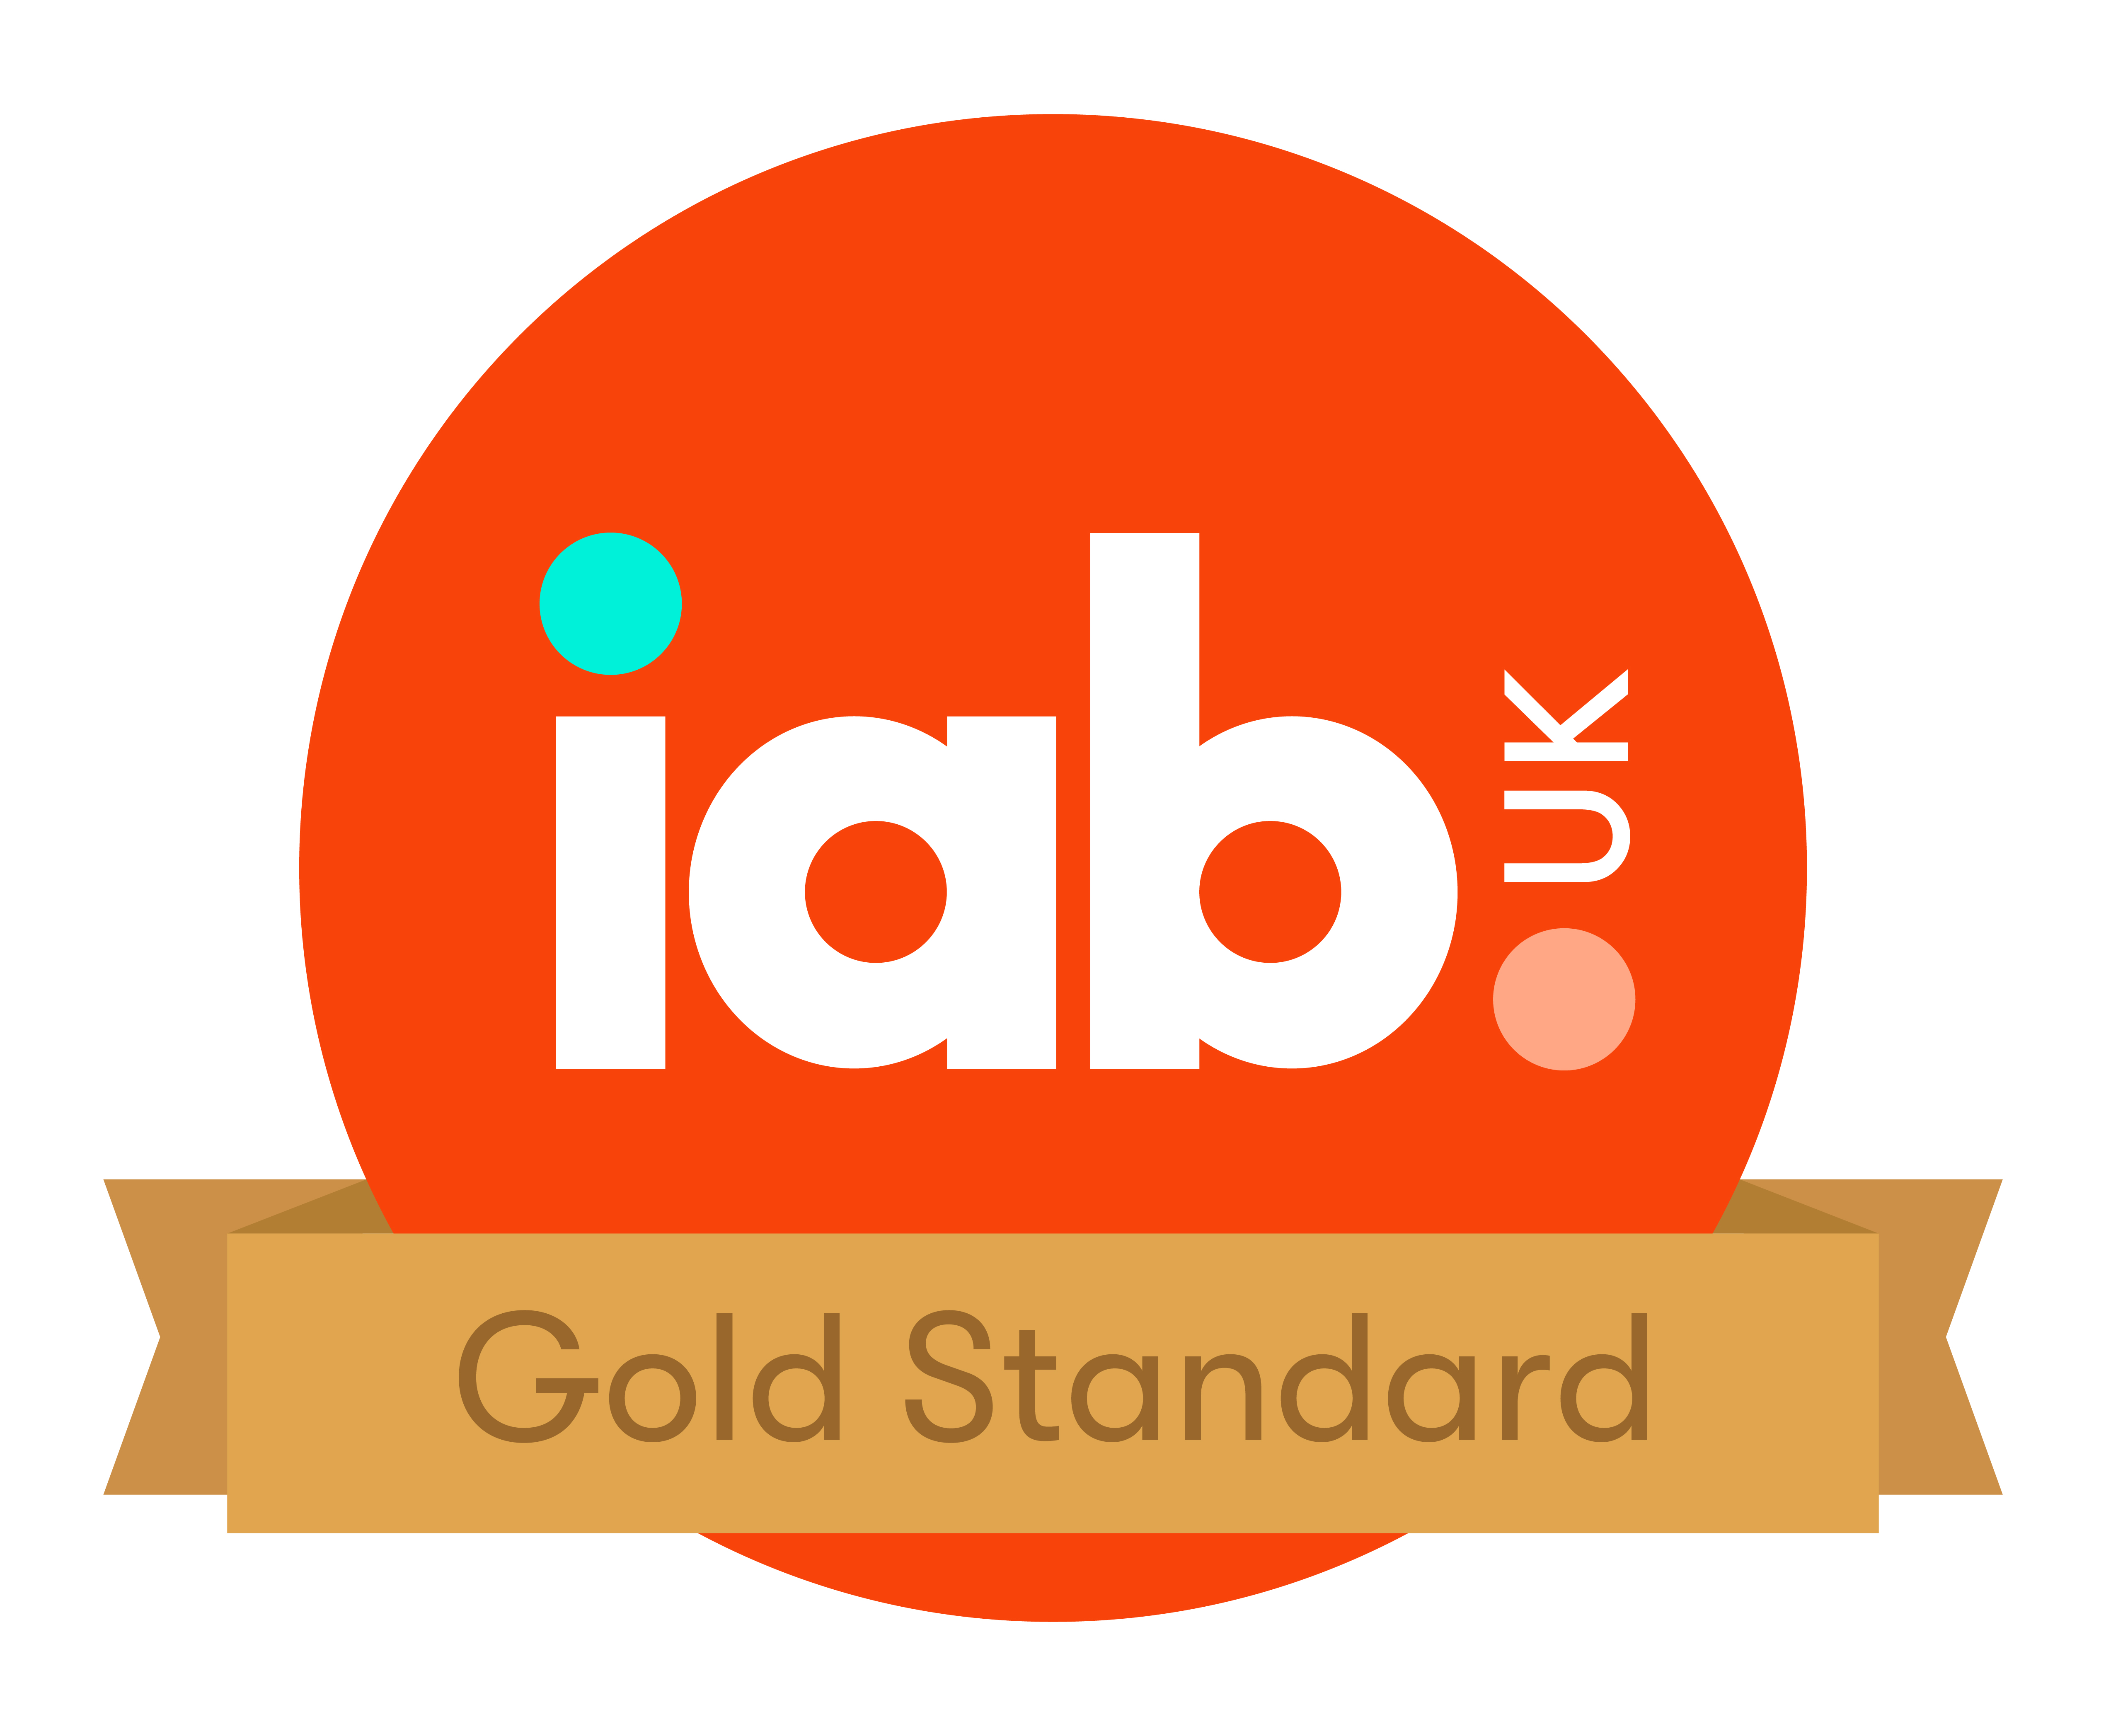 Coull is IAB Gold Standard certified